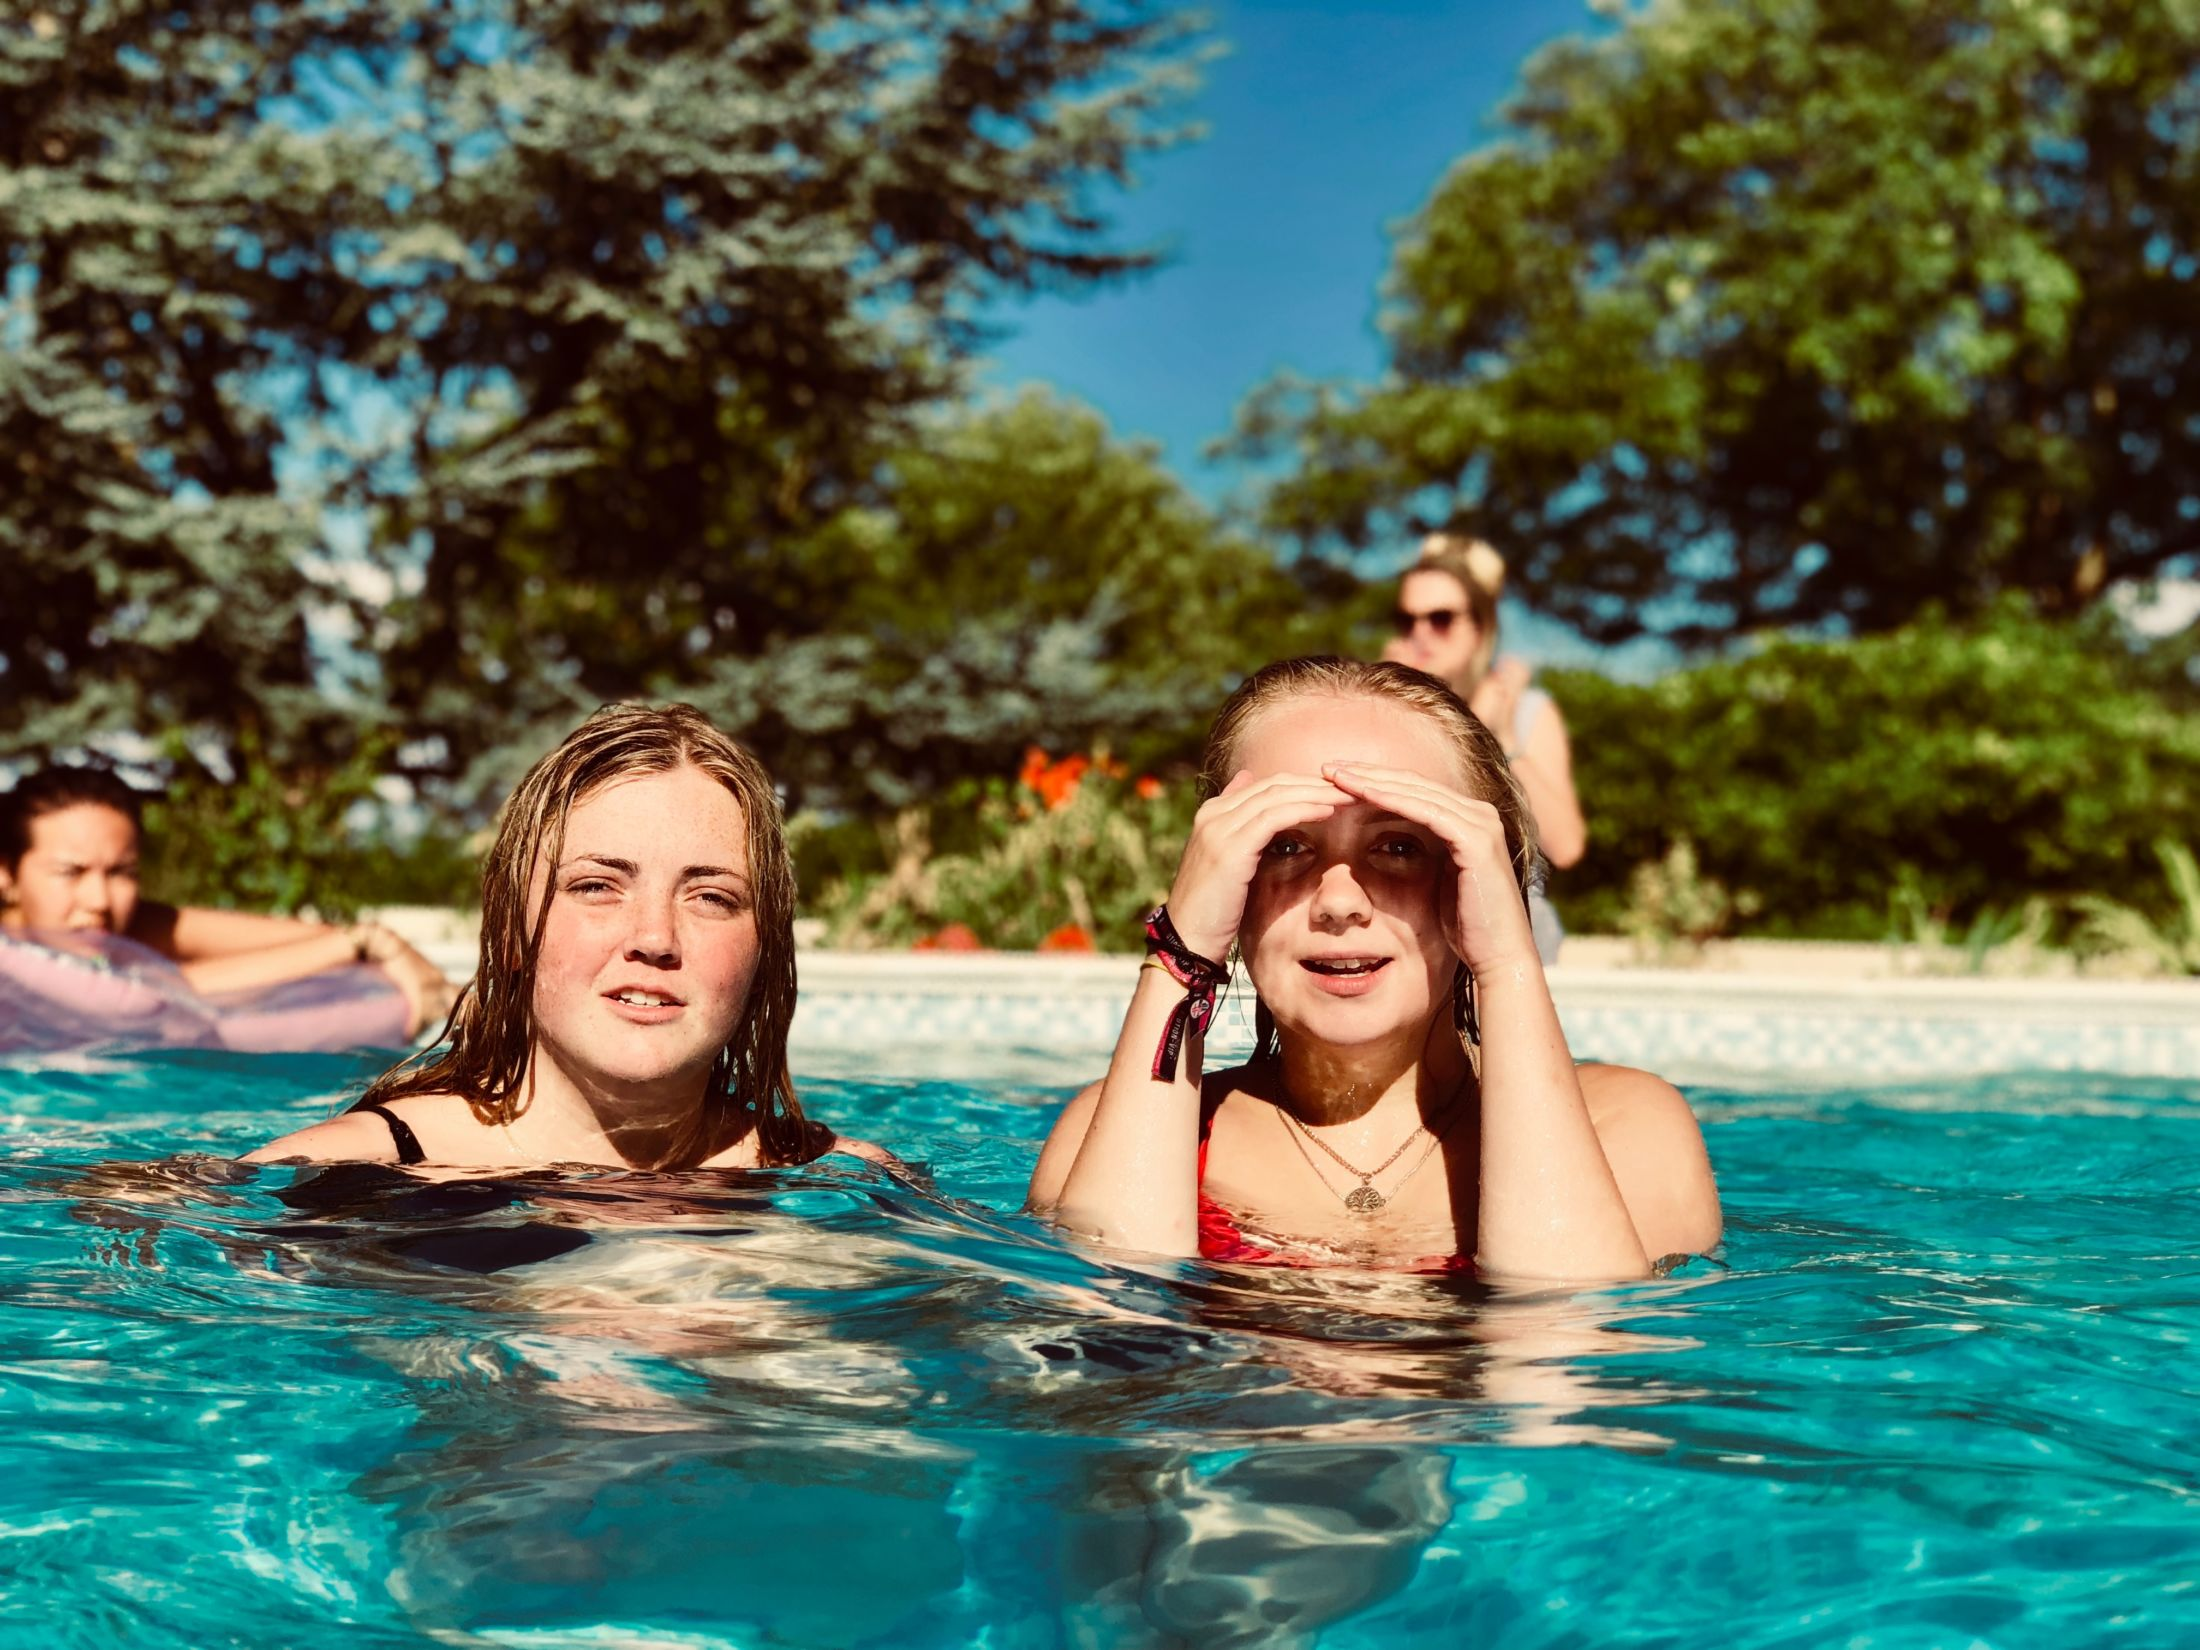 Dug Out Pool Enjoyment Family 1423353